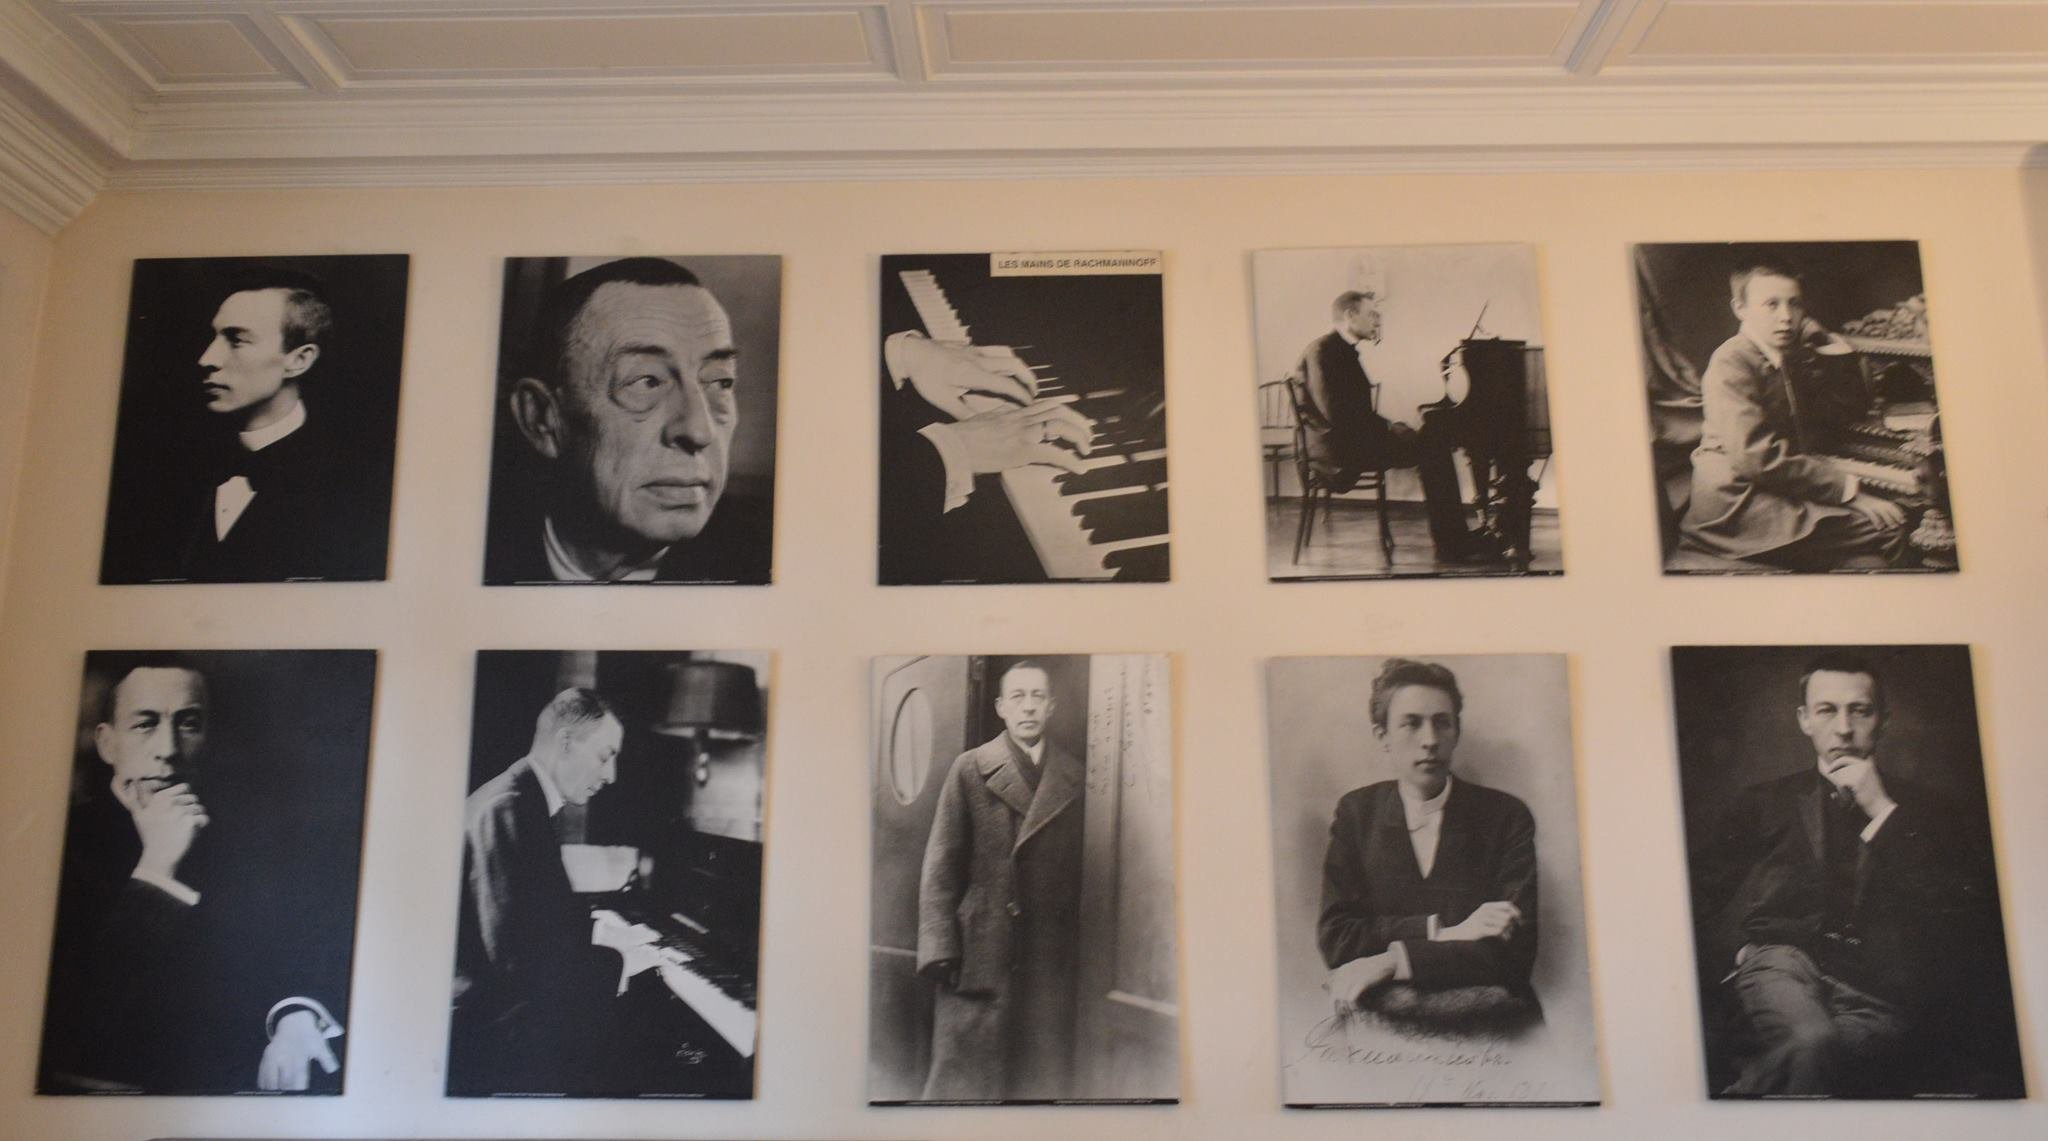 Russian  Conservatory in France was set up by a group of musicians and composers who fled Russia back in 1917. All of them were from the St, Petersburg Conservatory (Conservatoire de musique de Saint Petersbourg.)